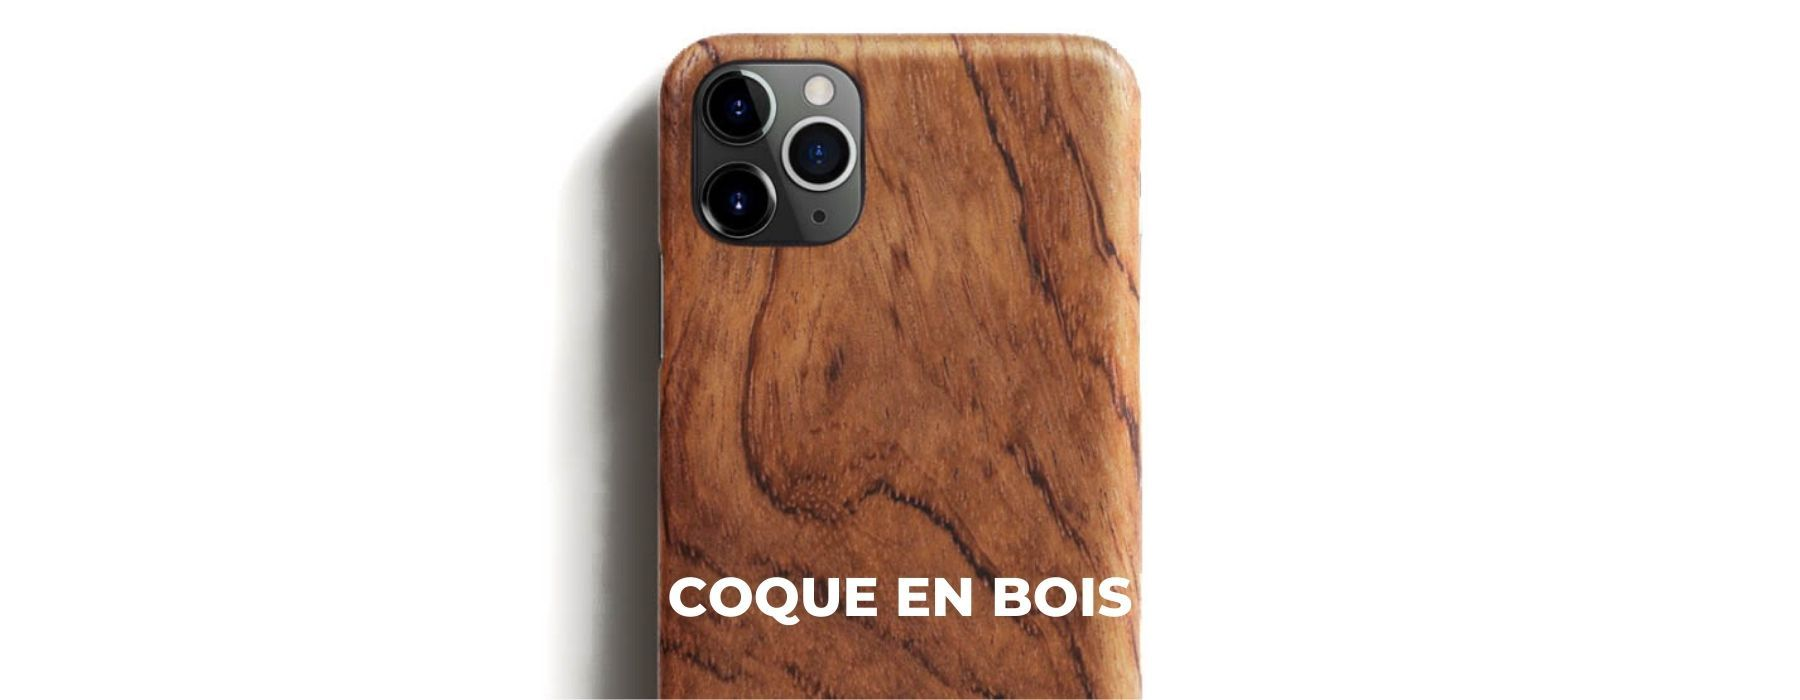 collections/COQUE_IPHONE_11_PRO_a0e31d83-ccc8-4624-b61f-3f695d5afc76.jpg